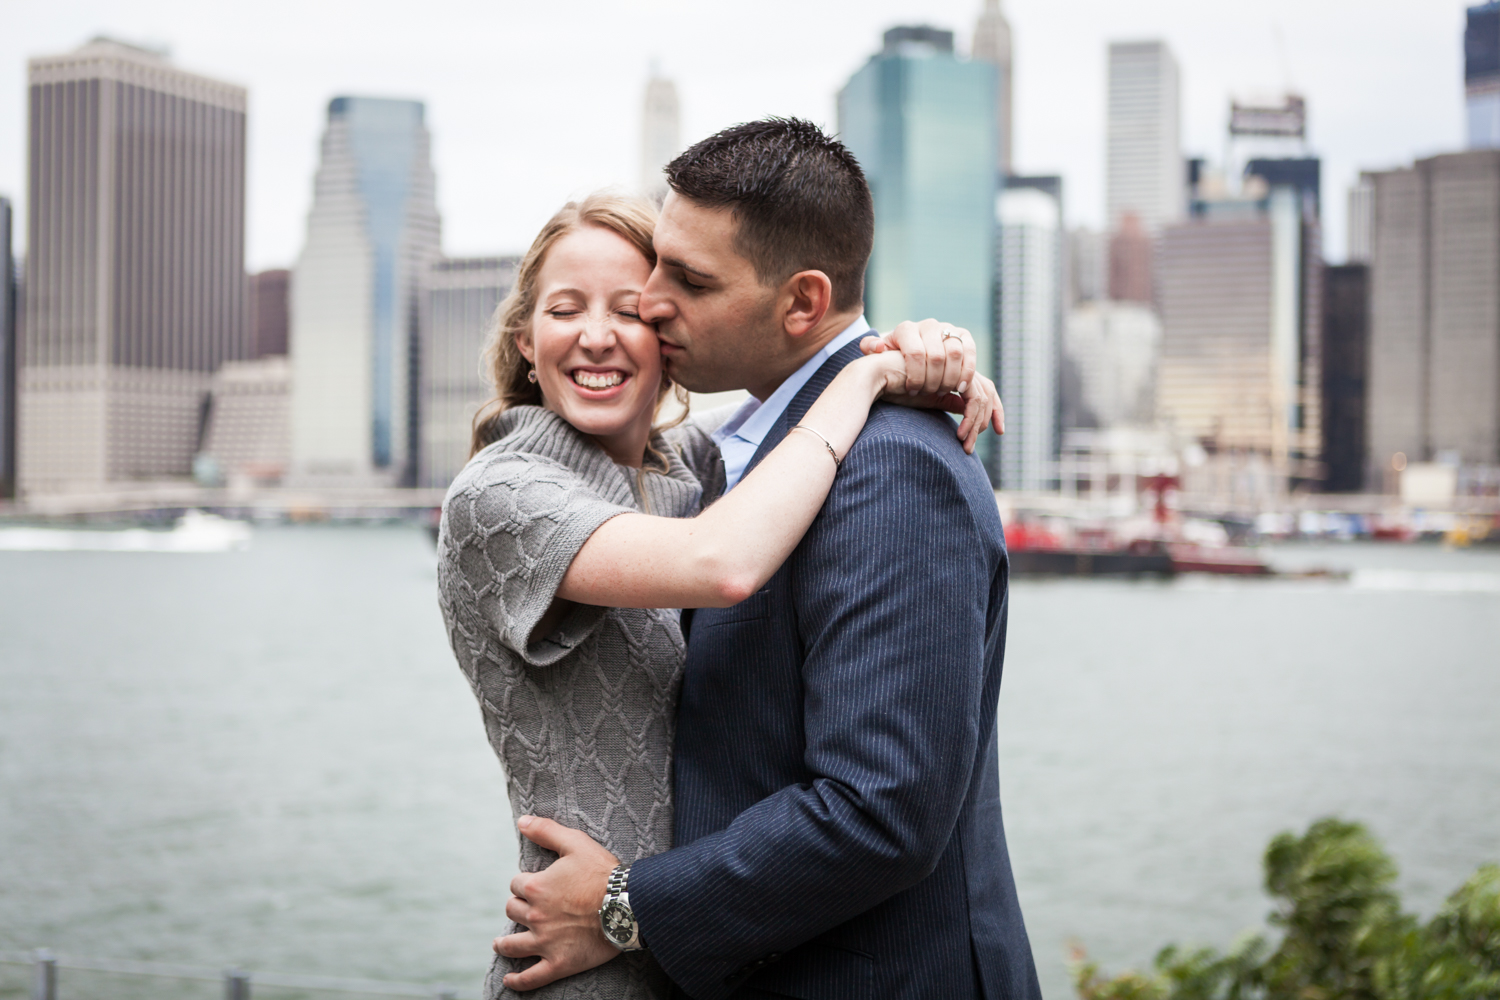 Man kissing woman on the side of her face with NYC skyline in background